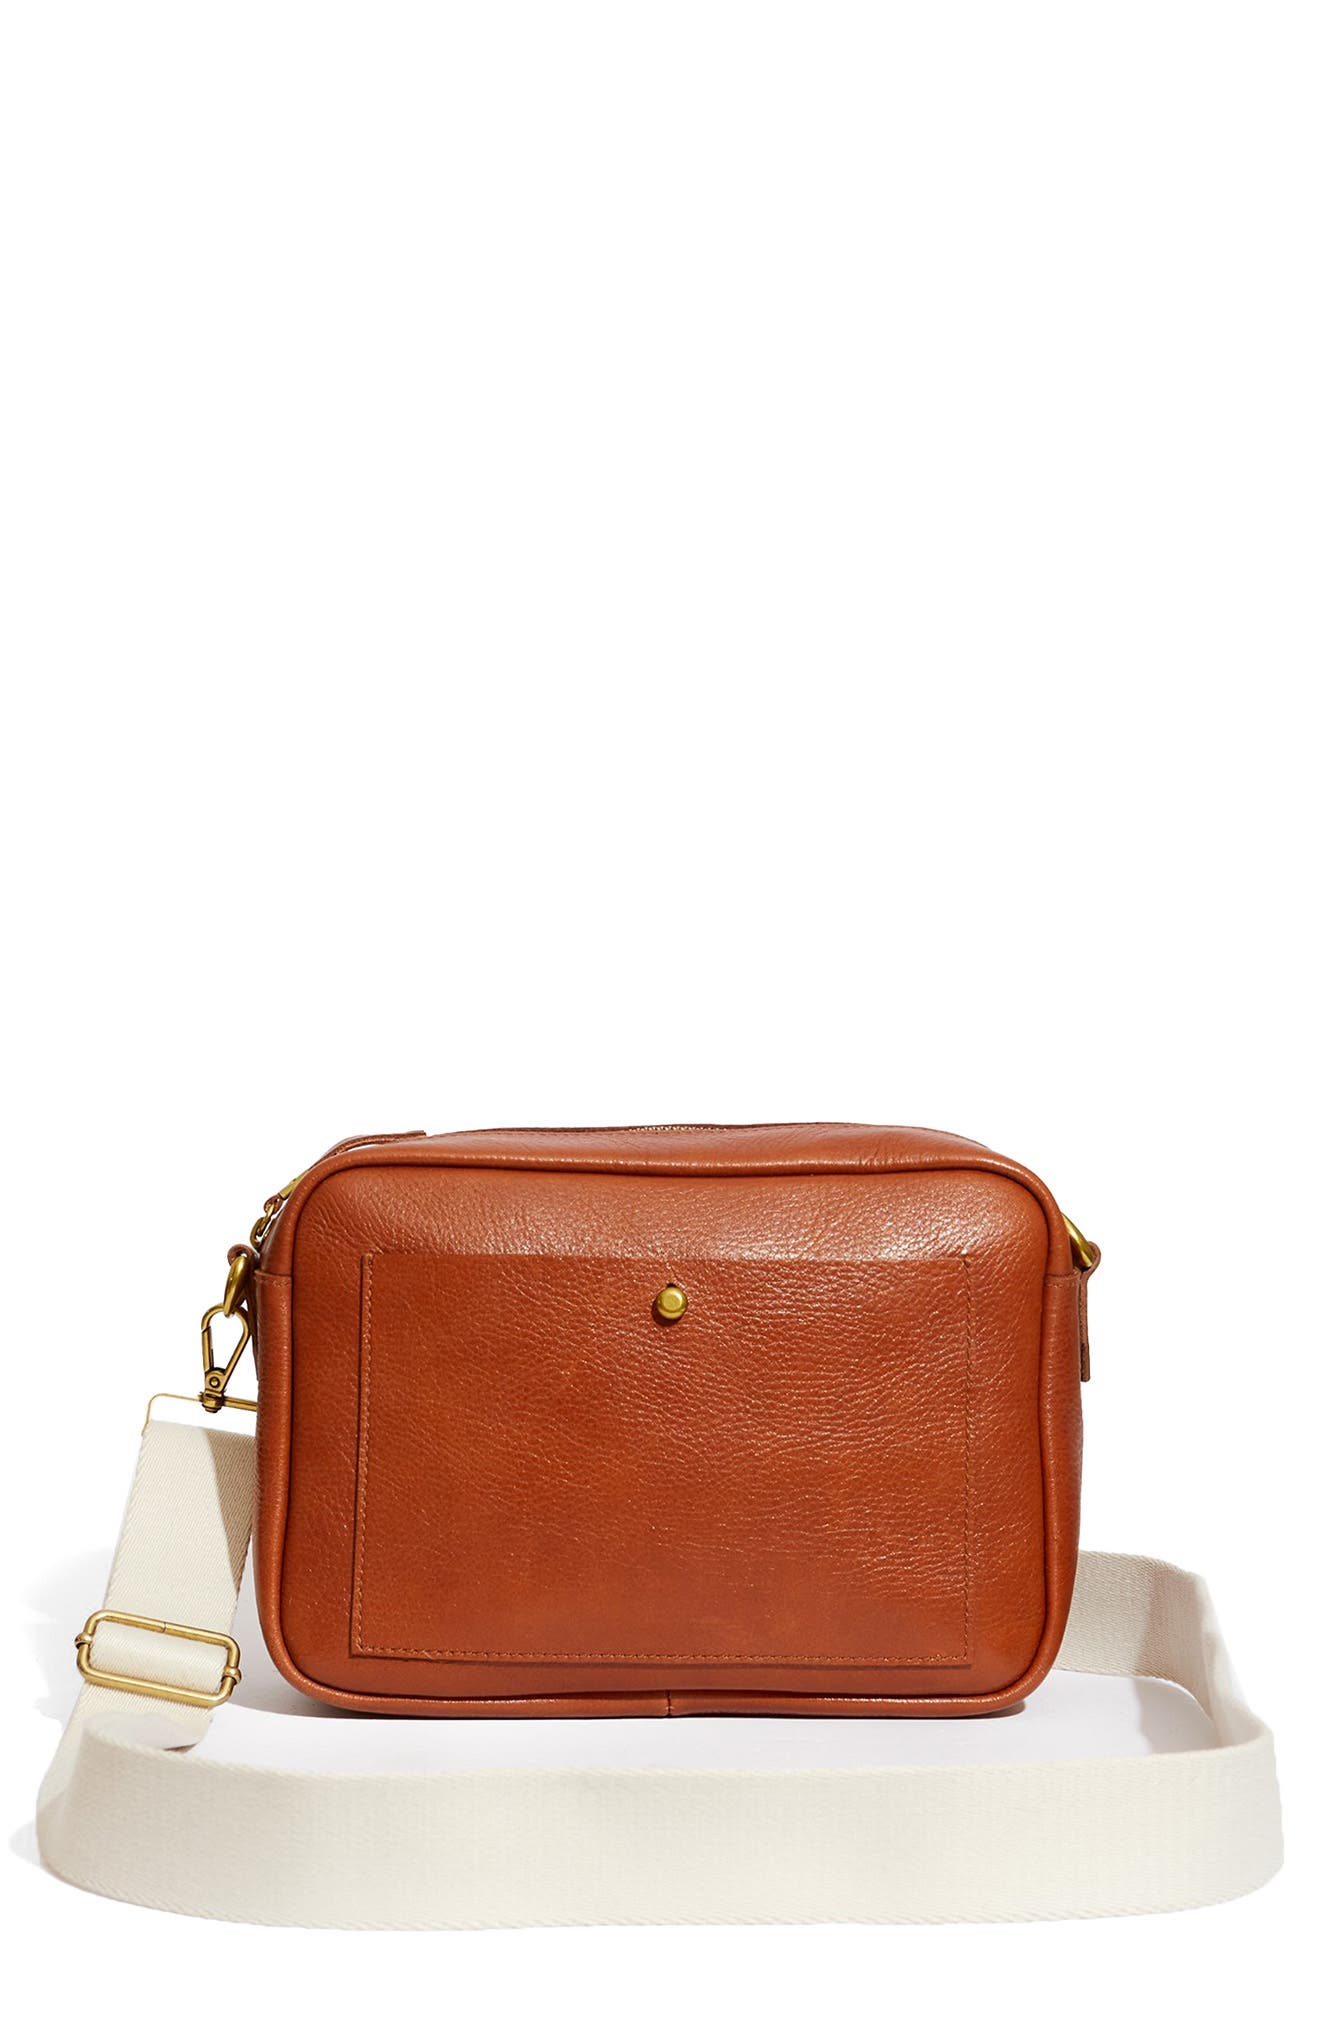 A brand-new take on Madewell\\\'s best seller, this medium-sized structured bag is big enough to fit a book, a water bottle or even your fancy camera. Made of high-quality leather that breaks in beautifully, it\\\'s cool, convenient and customizable with two strap styles to choose from (one\\\'s matching, one\\\'s wide and webbed). Style Name: Madewell The Medium Transport Camera Bag. Style Number: 6088652. Available in stores.